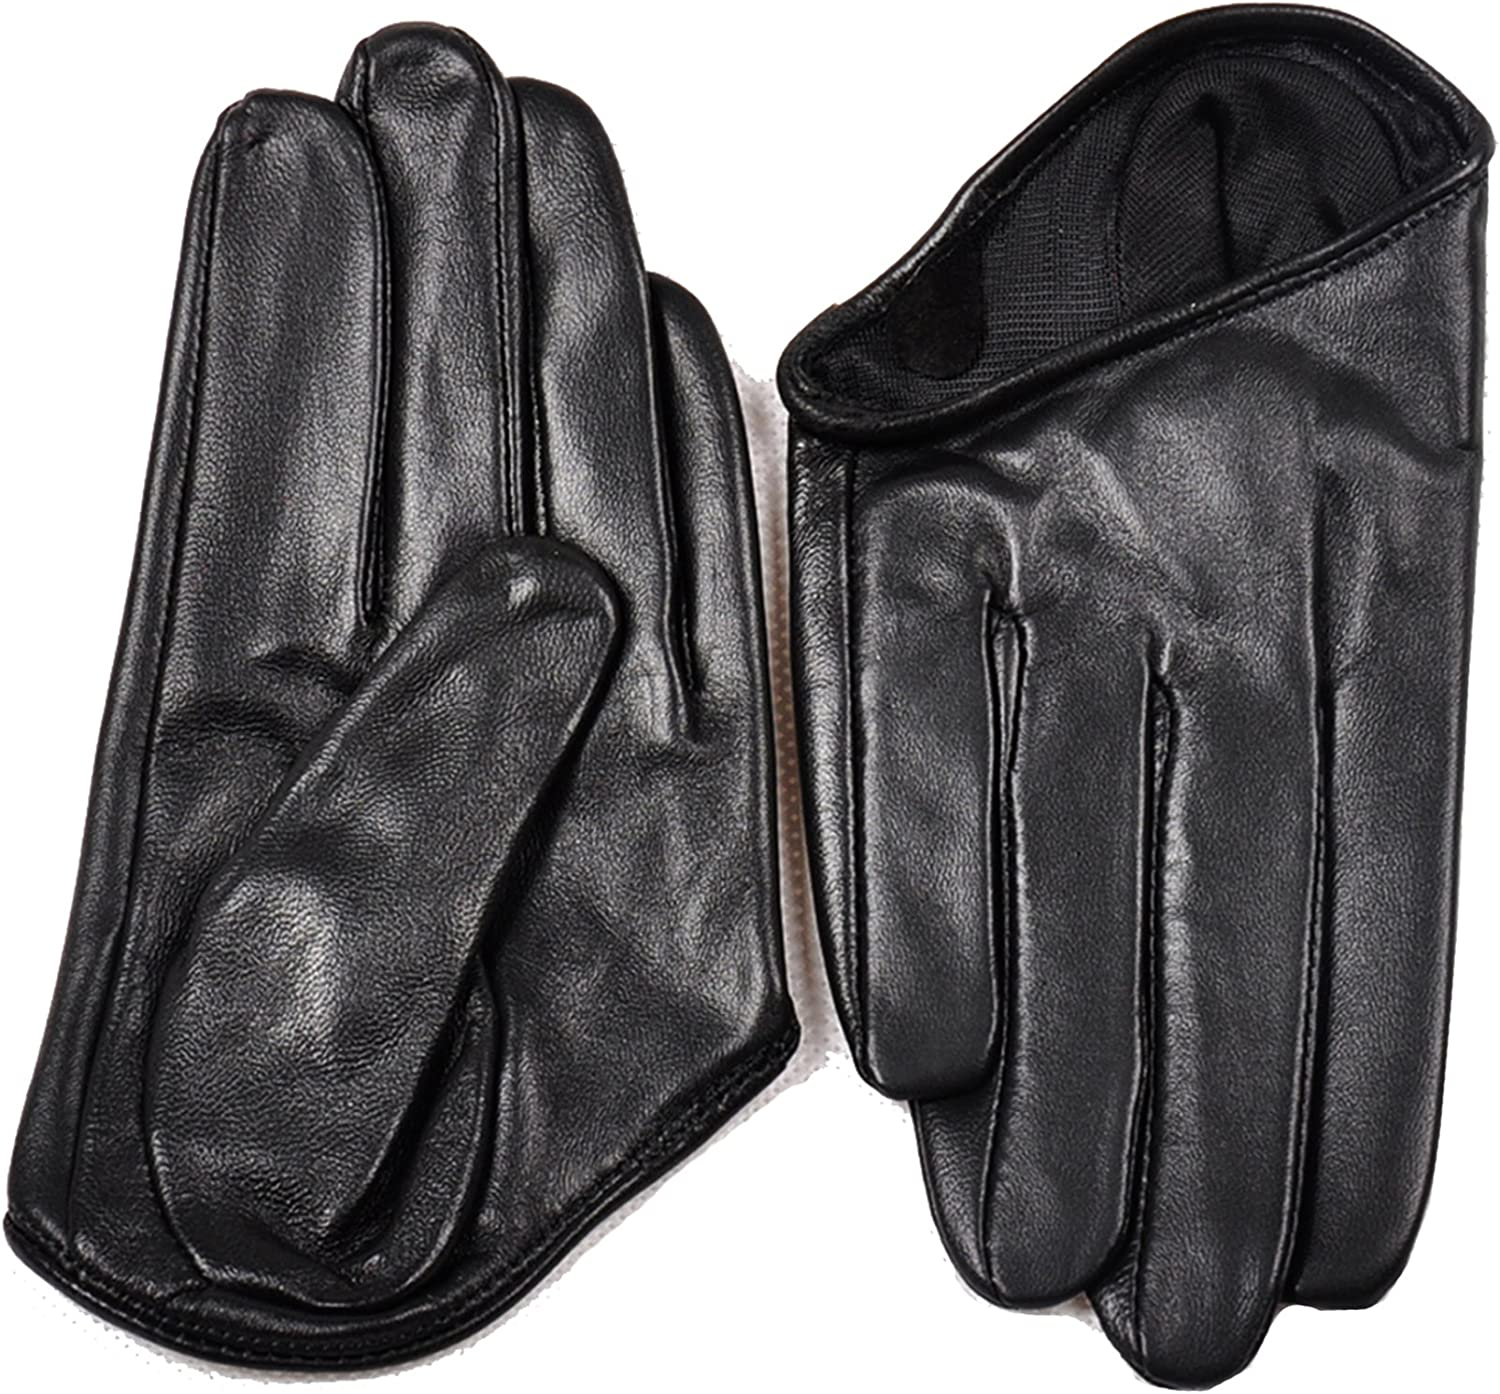 May&Maya Women's Fashion Five-Finger Real Leather Half Gloves